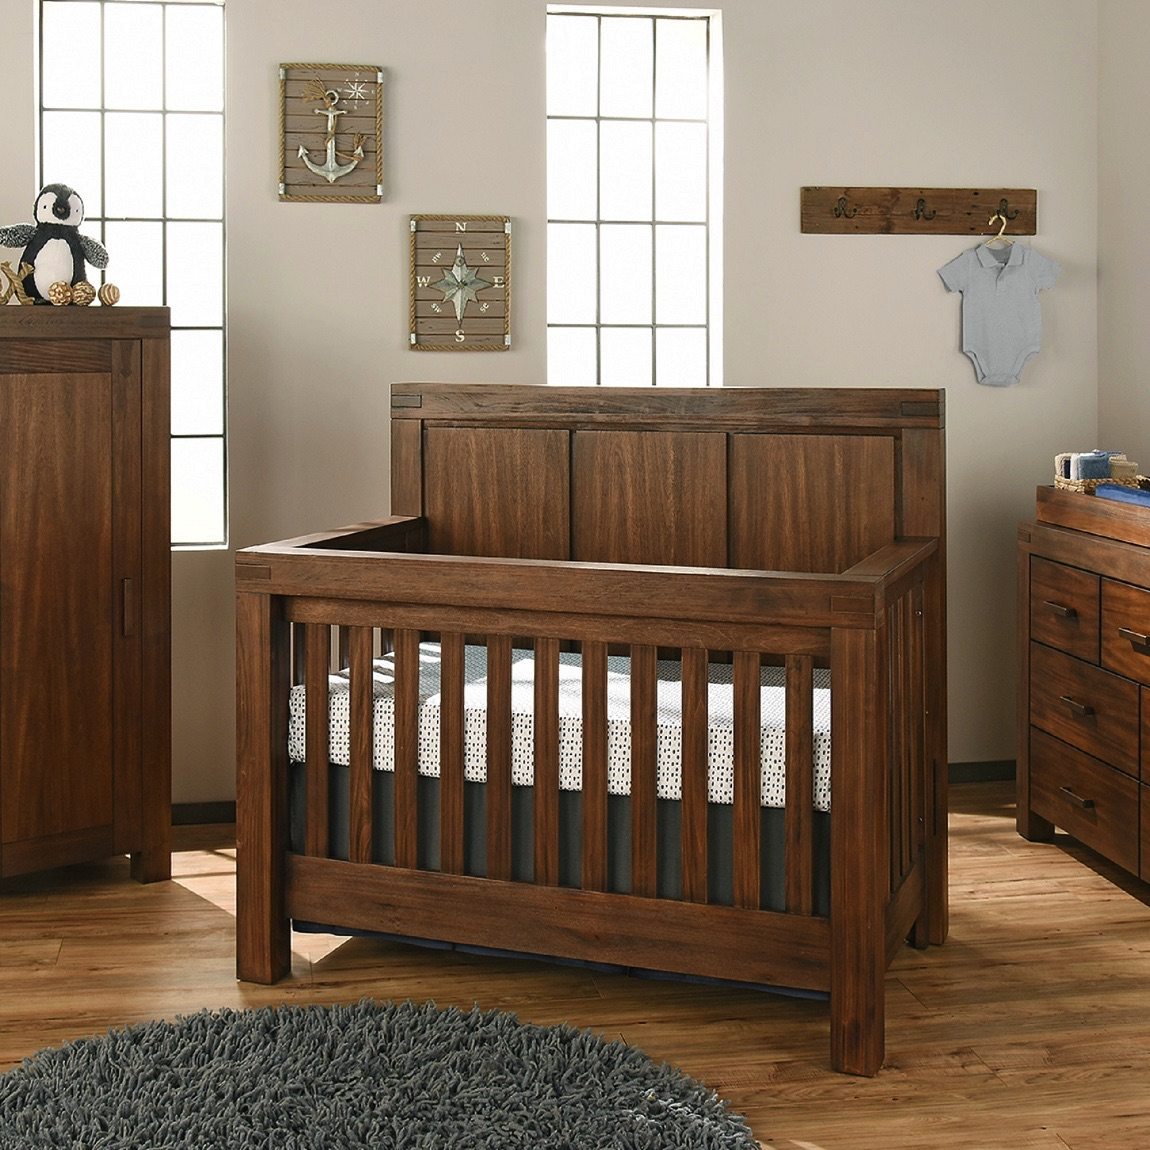 4 in 1 Convertible Crib  Piermont Rustic Farmhouse Brown  Oxford Baby  Kids